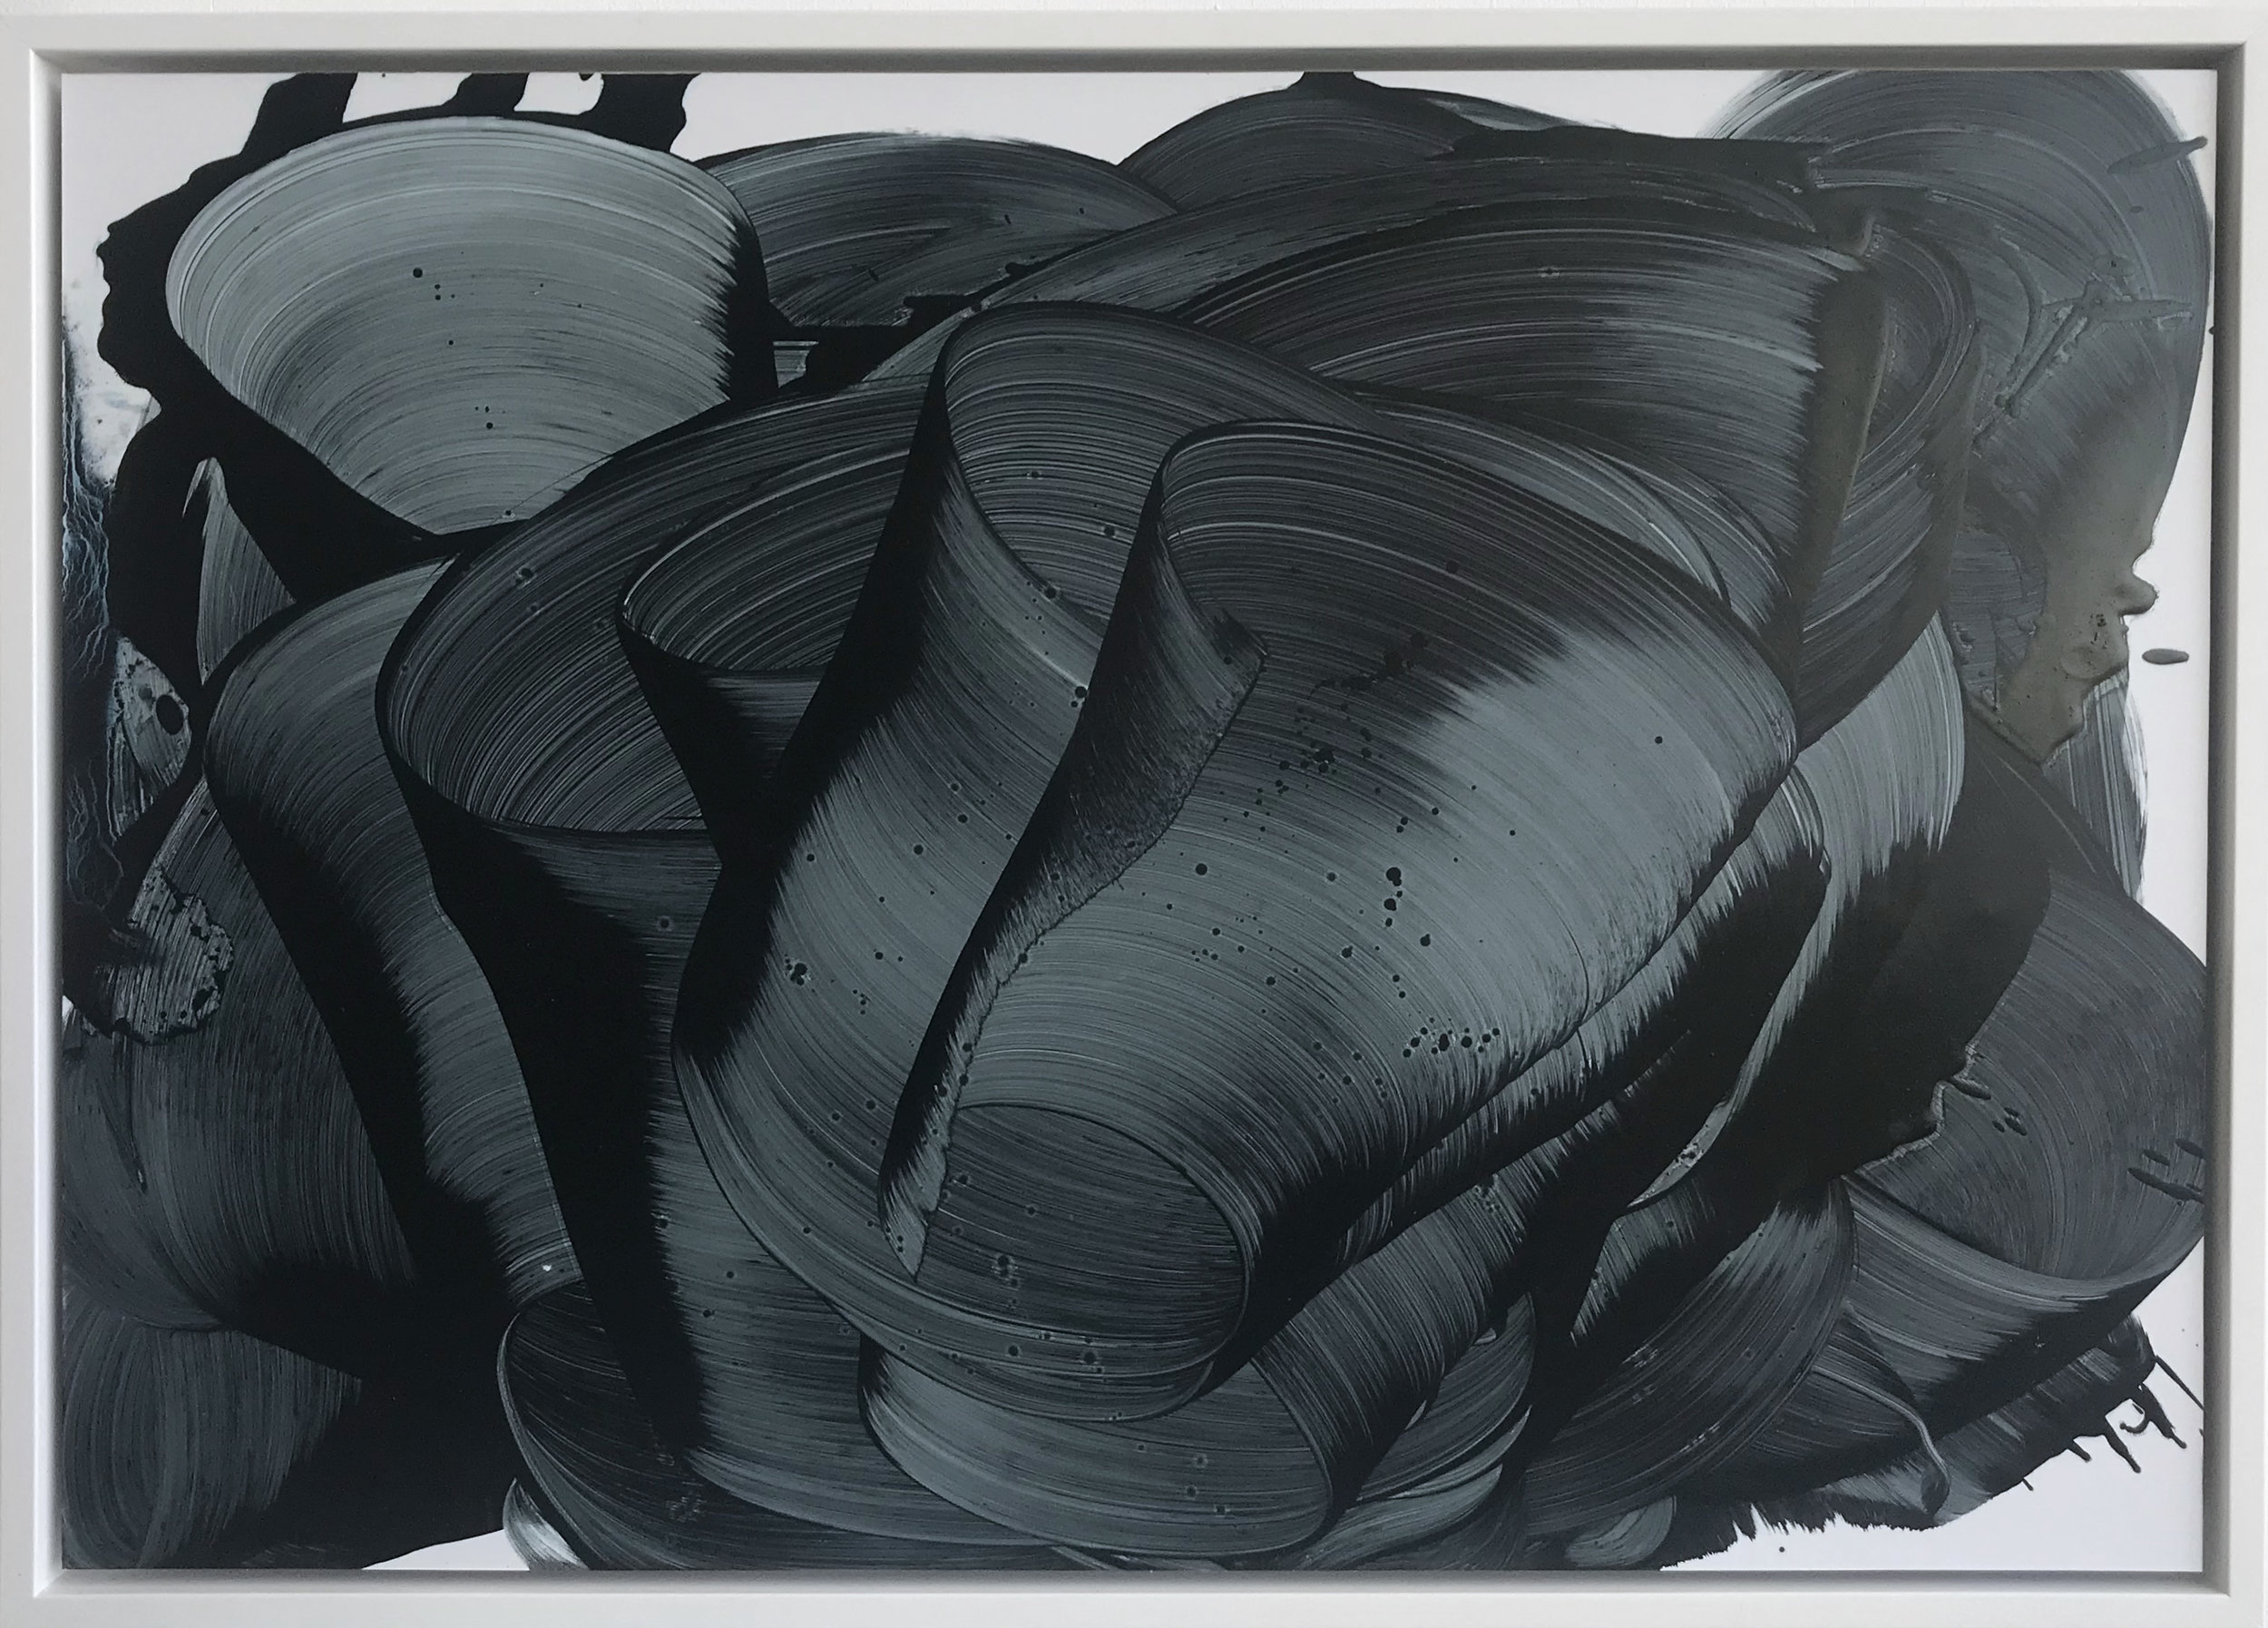 from the Charybdis series (Bluest Black), 2018  Oil on paper  44.2 x 62.2 cm